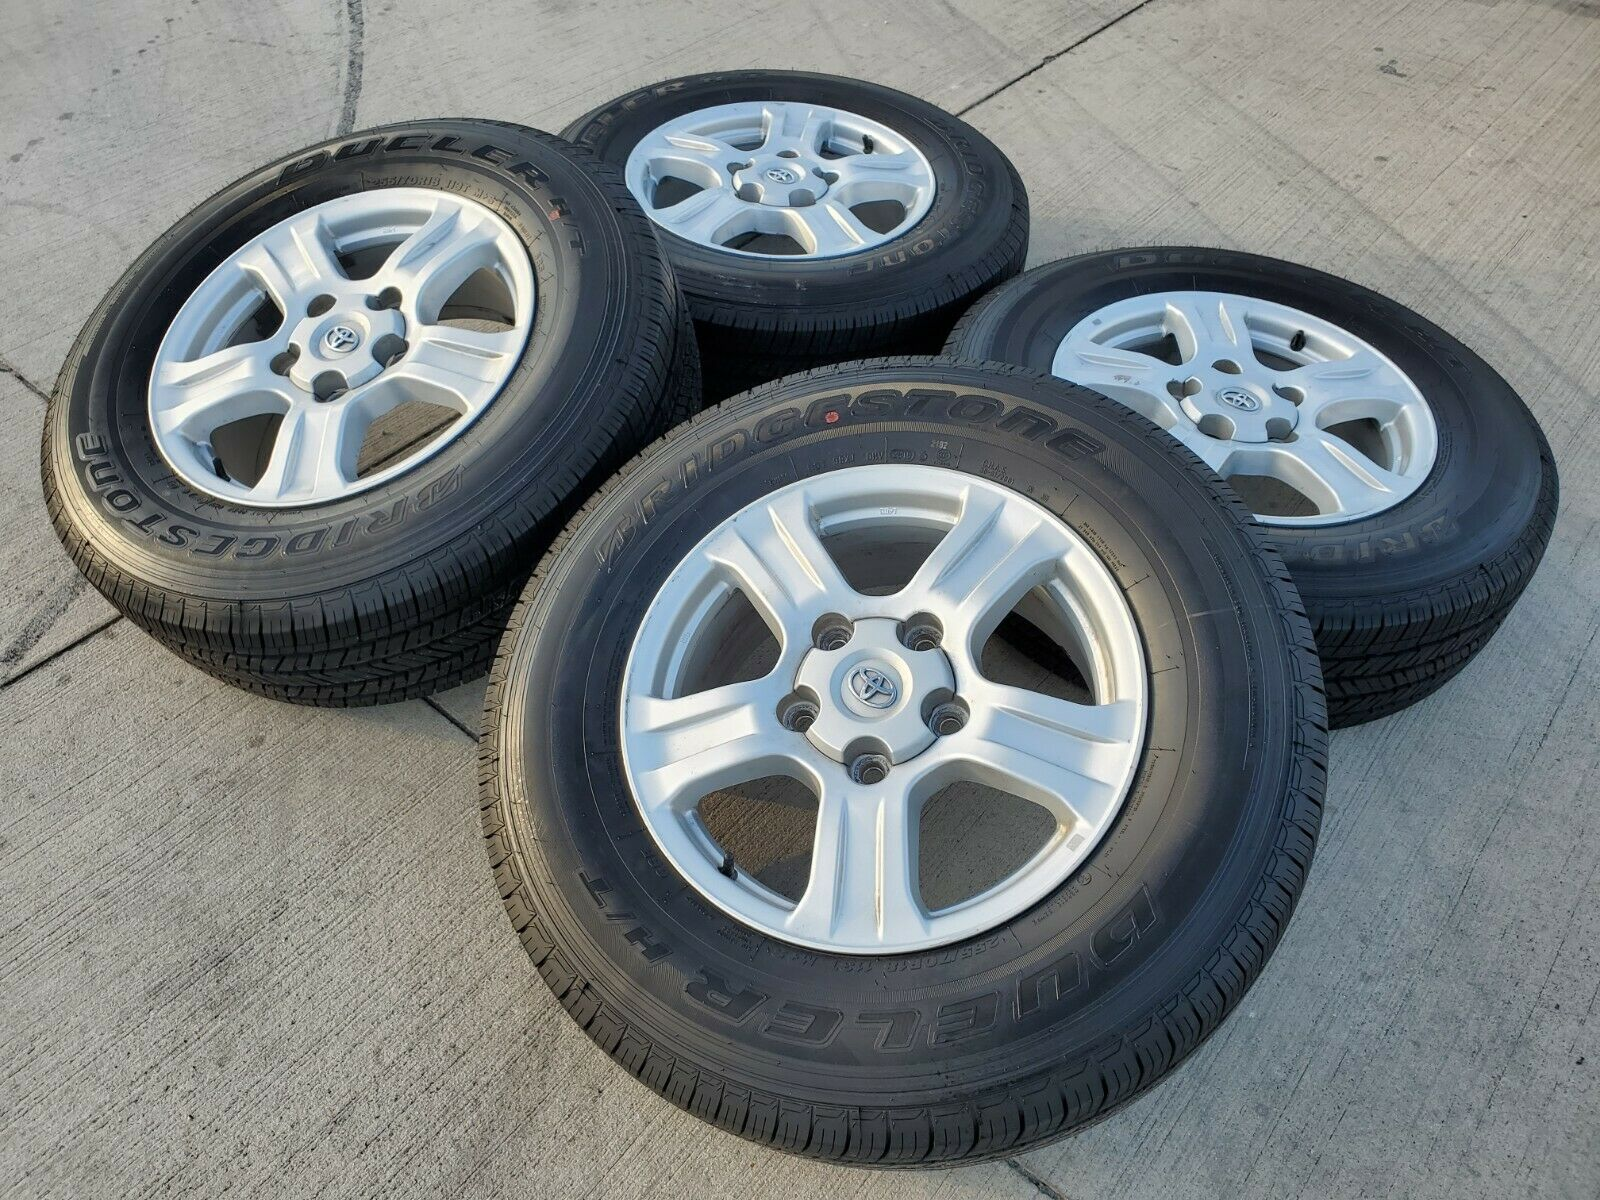 18 Toyota Tundra Sequoia Oem Tss Trd Wheels Rims Tires 2014 2015 Wiring Harness 1 Of 12only Available